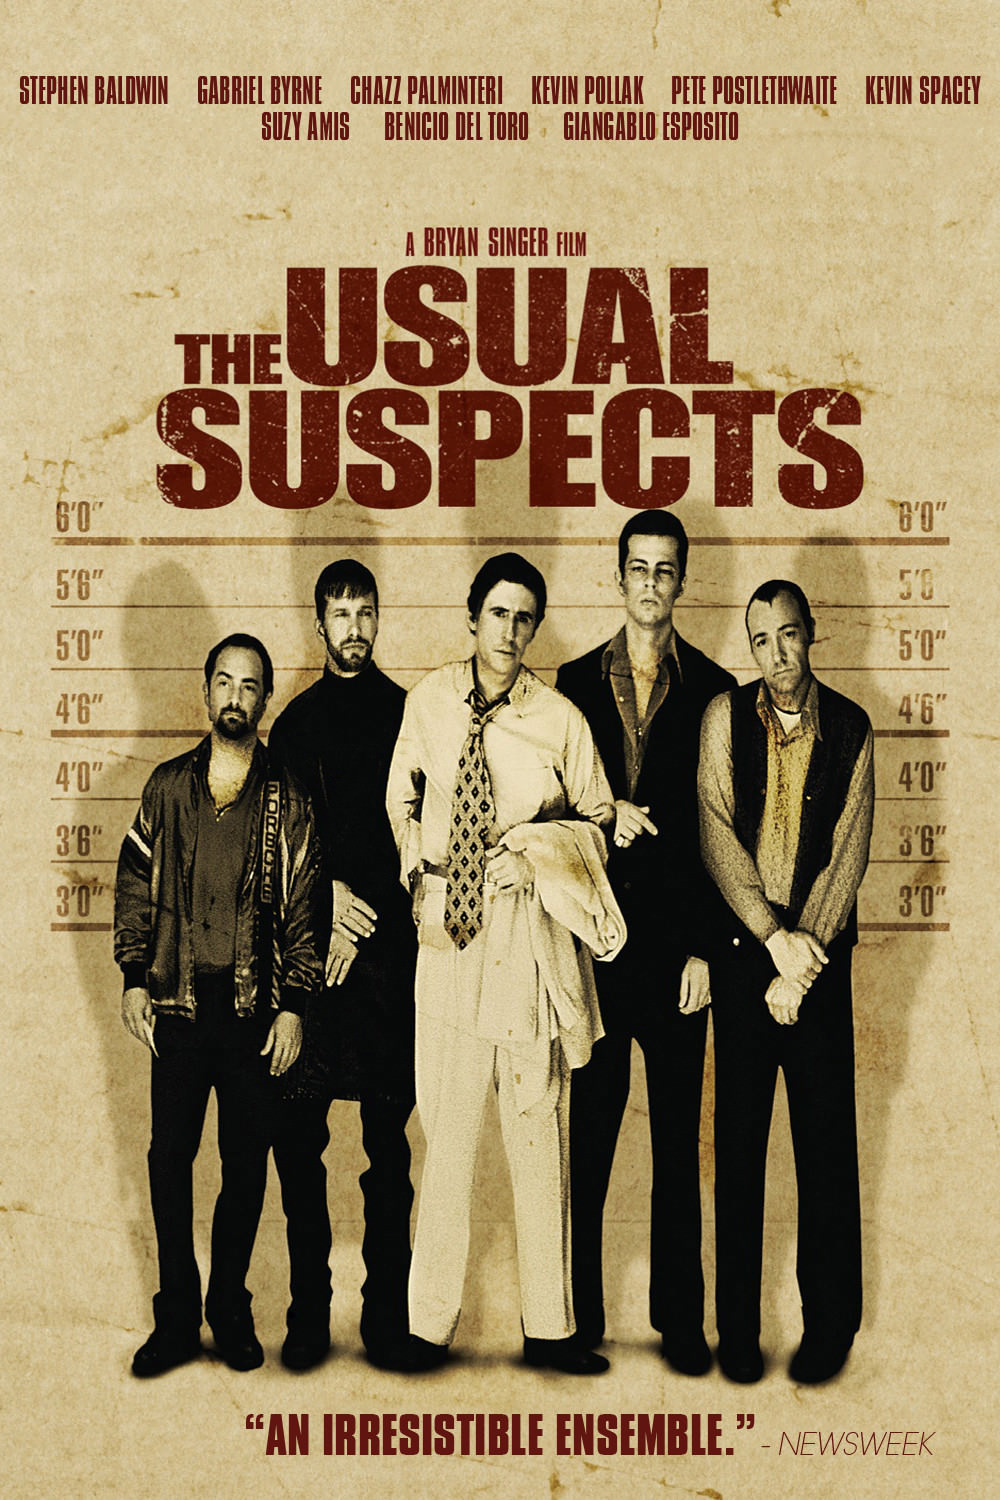 Usual suspects synger